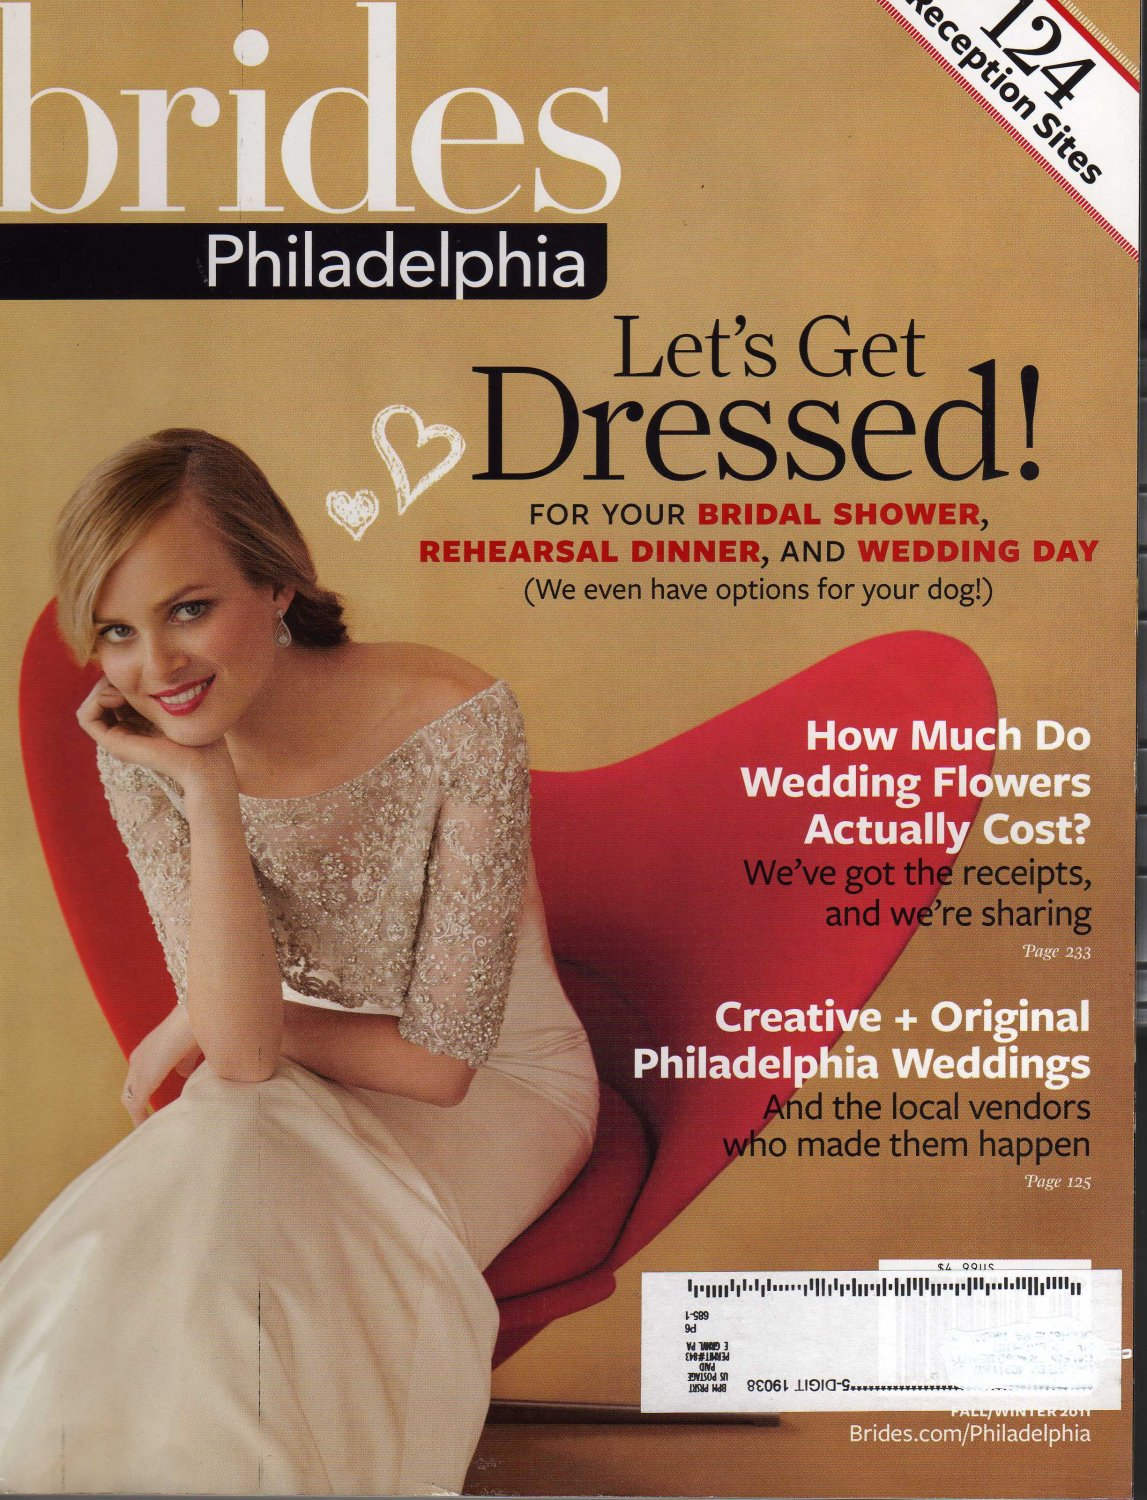 Brides Philadelphia Magazine Fall/Winter 2011